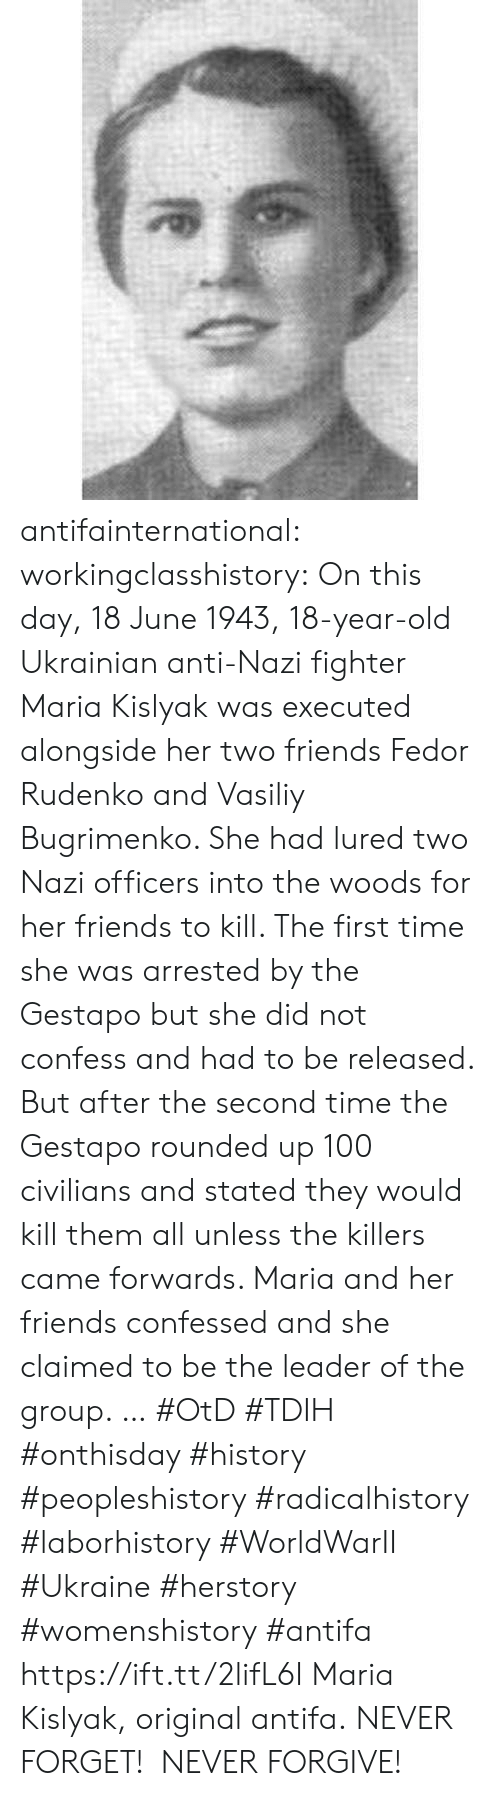 the killers: antifainternational: workingclasshistory: On this day, 18 June 1943, 18-year-old Ukrainian anti-Nazi fighter Maria Kislyak was executed alongside her two friends Fedor Rudenko and Vasiliy Bugrimenko. She had lured two Nazi officers into the woods for her friends to kill. The first time she was arrested by the Gestapo but she did not confess and had to be released. But after the second time the Gestapo rounded up 100 civilians and stated they would kill them all unless the killers came forwards. Maria and her friends confessed and she claimed to be the leader of the group.  … #OtD #TDIH #onthisday #history #peopleshistory #radicalhistory #laborhistory #WorldWarII #Ukraine #herstory #womenshistory #antifa https://ift.tt/2lifL6I Maria Kislyak, original antifa. NEVER FORGET! NEVER FORGIVE!